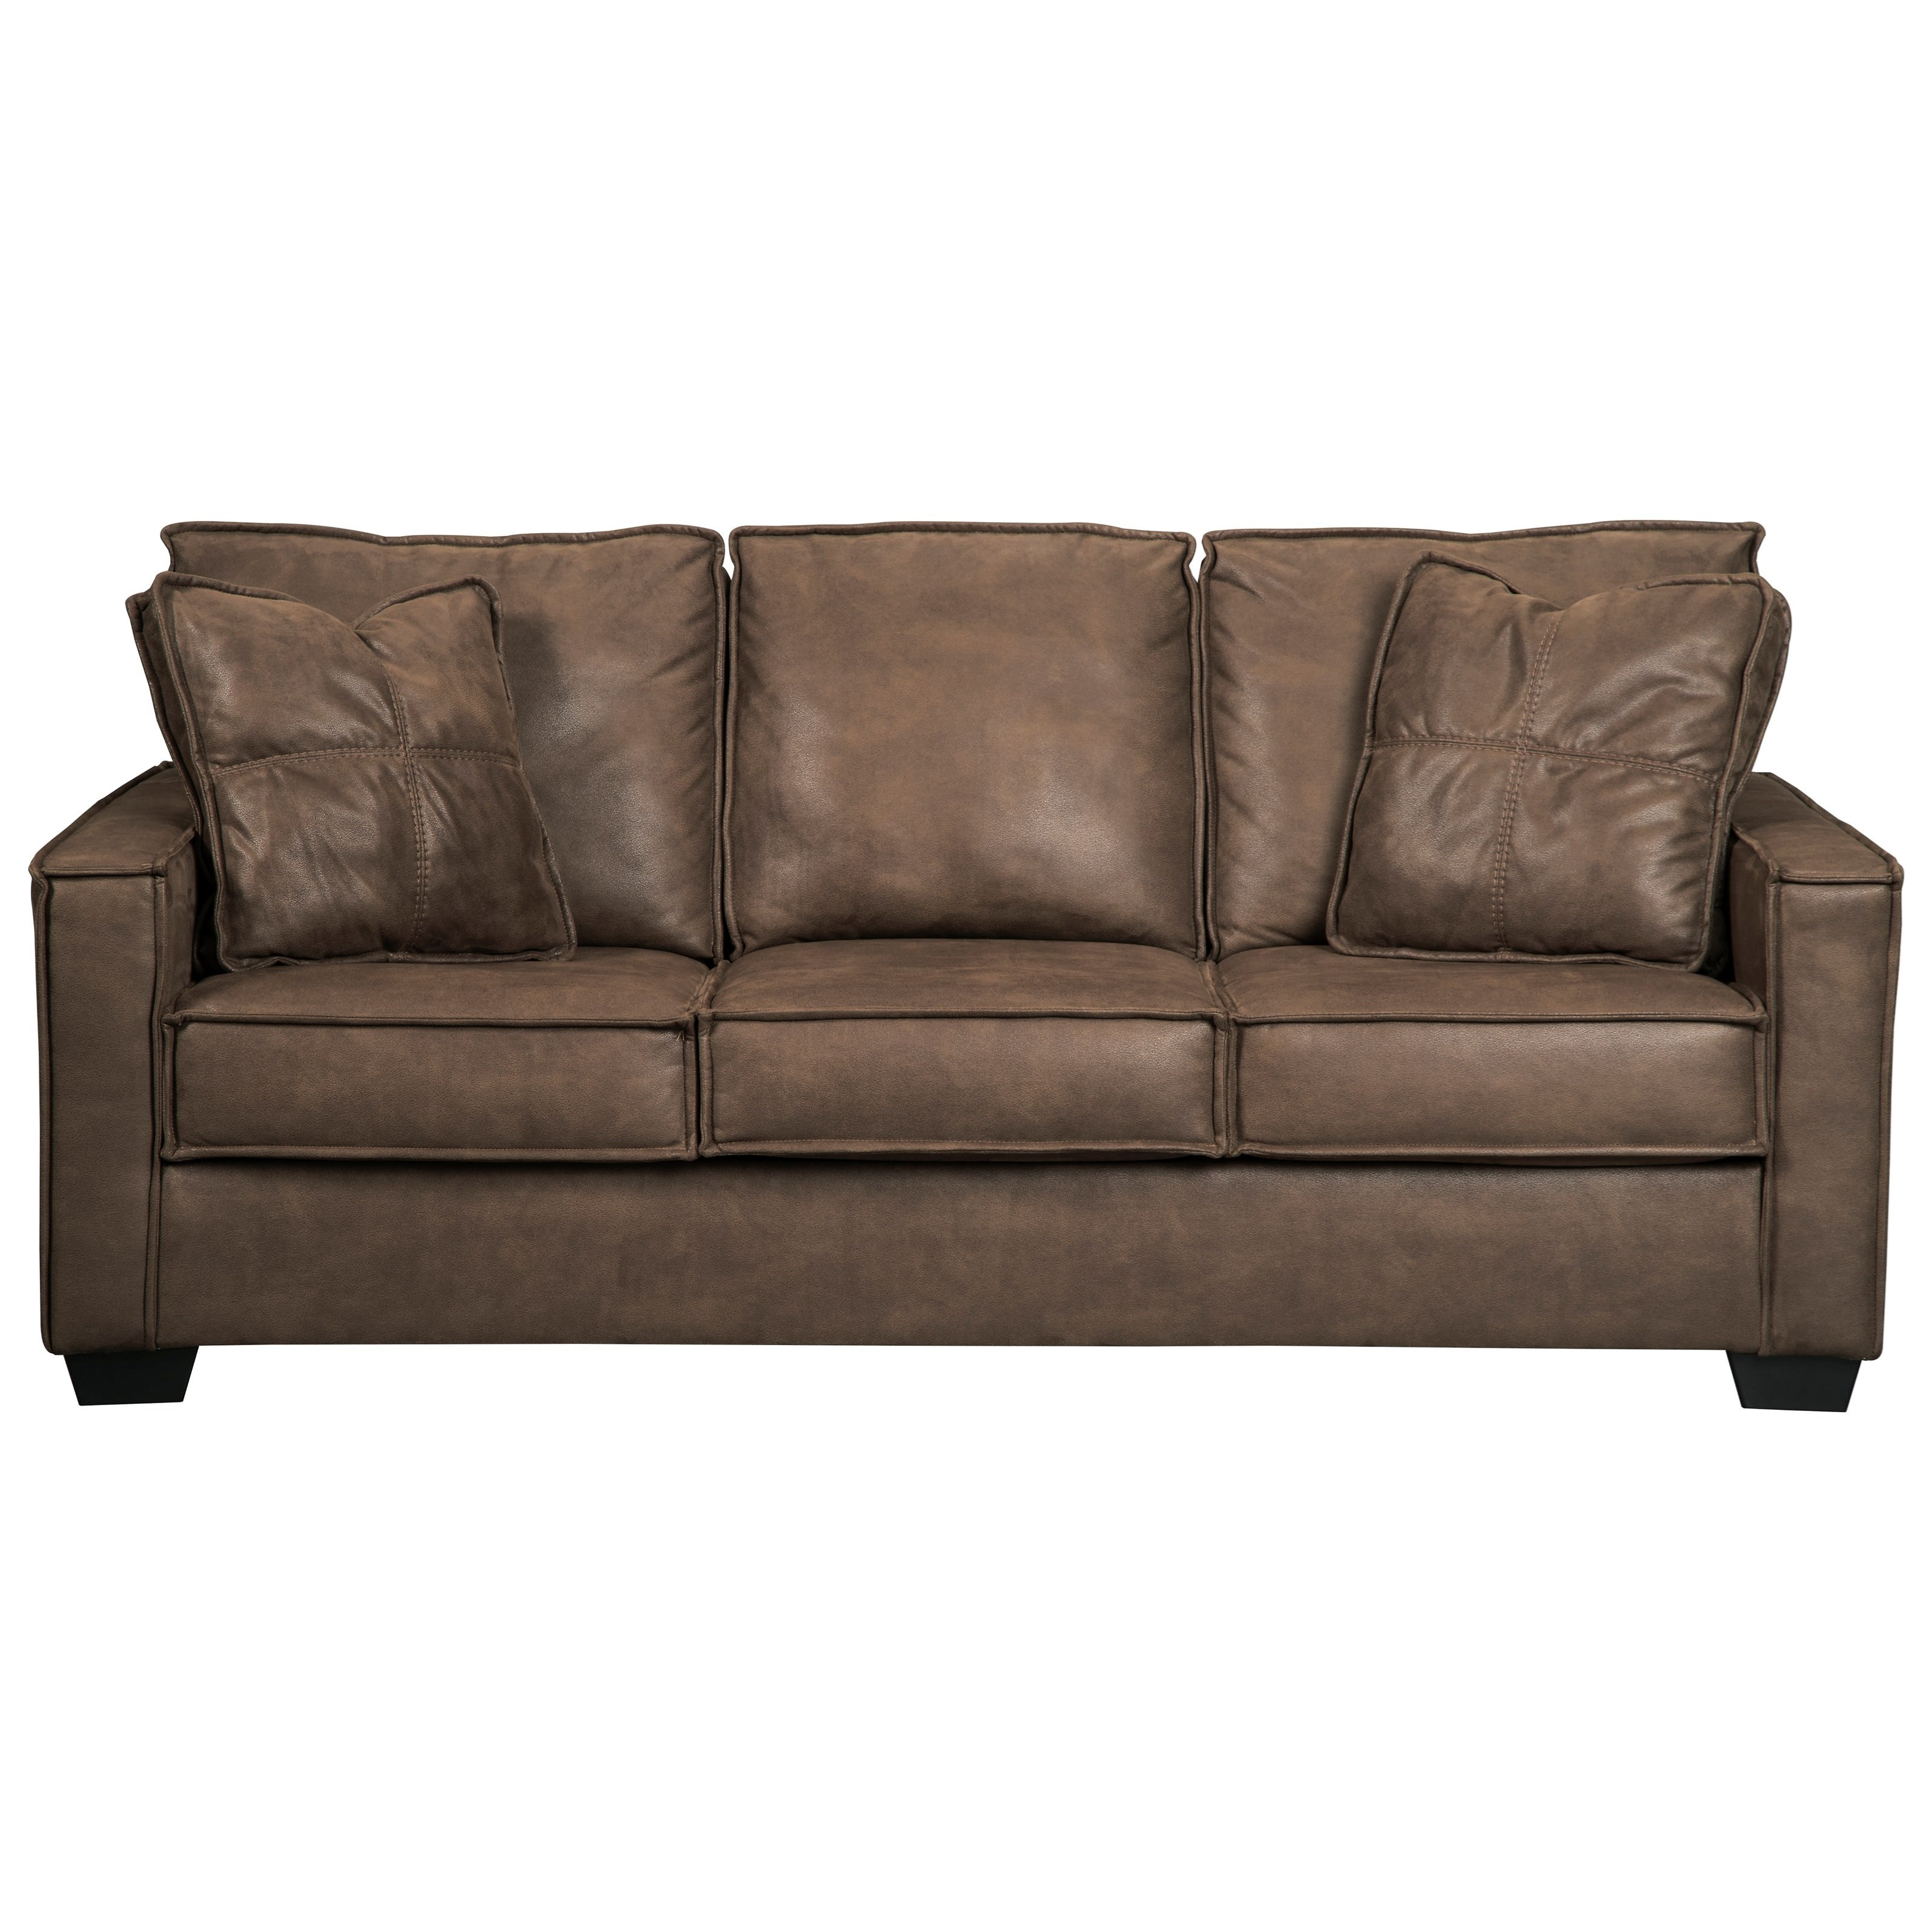 Kunstleder Couch Faux Leather Sofa With Piecrust Welt Trim By Signature